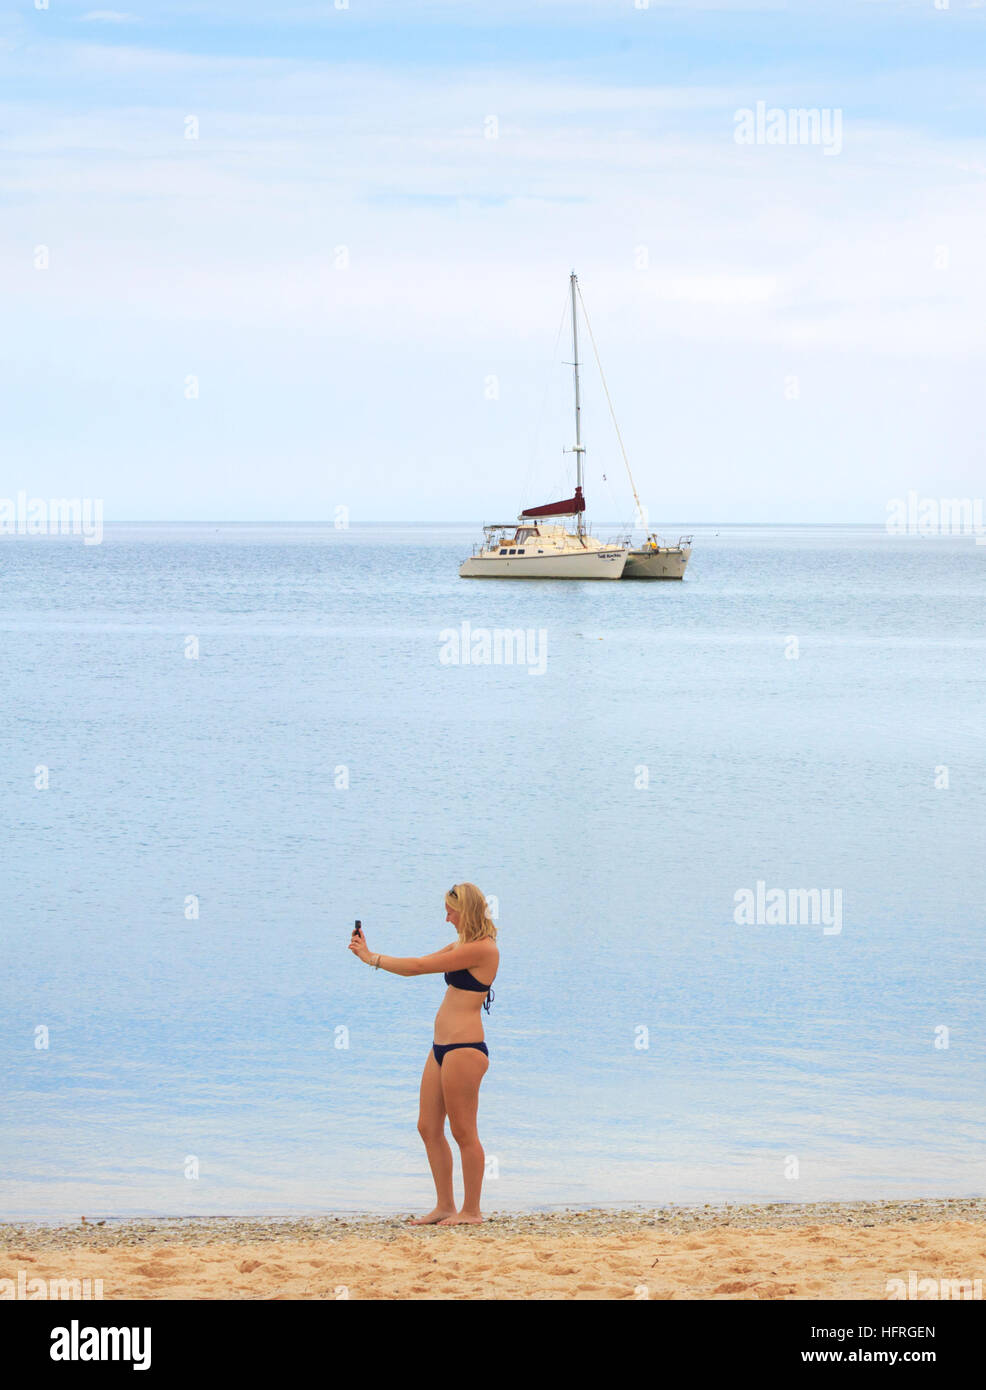 A girl in her early 20s taking a selfie on the beach with a catamaran yacht in the distance. - Stock Image